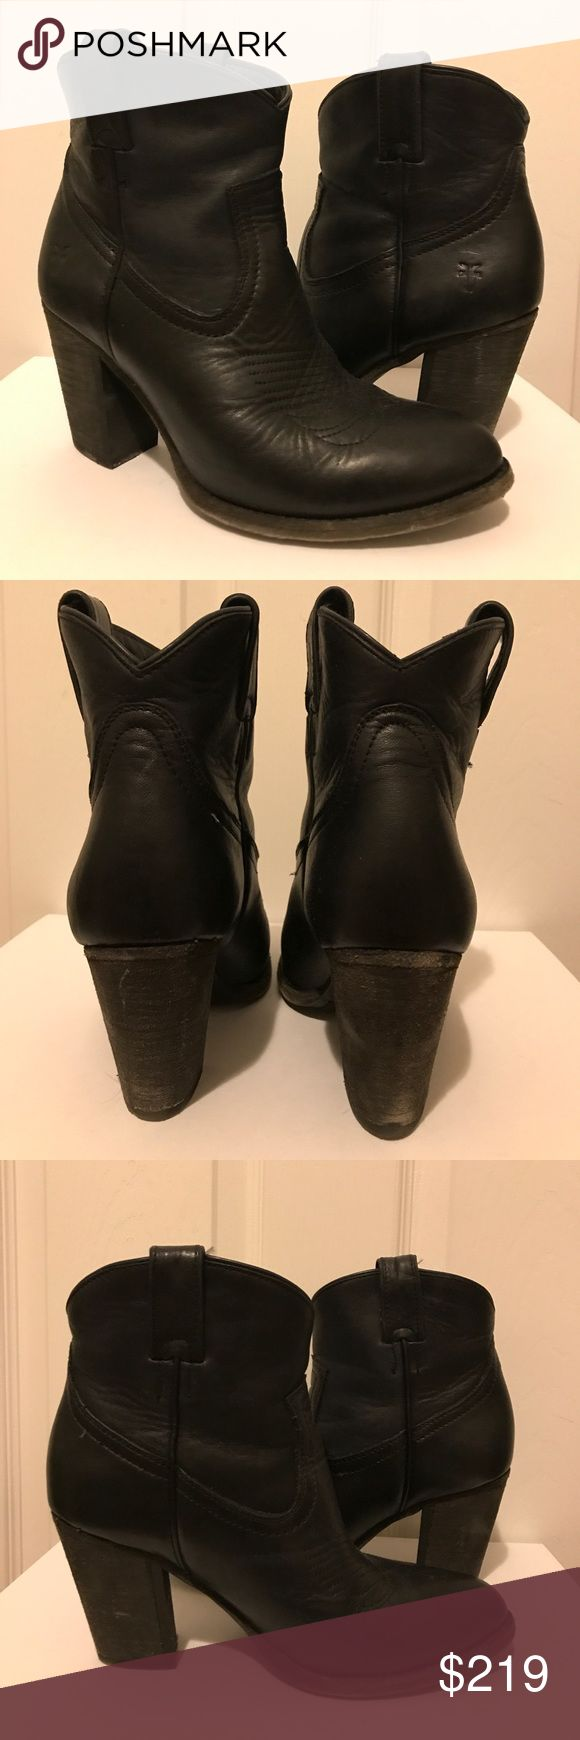 🍁FALL SALE🍁Frye Ilana Short Boot black 7m Frye Ilana Short Boot black 7m. Excellent condition. Worn twice. Only sign of wear is on soles as shown. Incredibly comfortable. Exceptional leather. Frye Shoes Heeled Boots